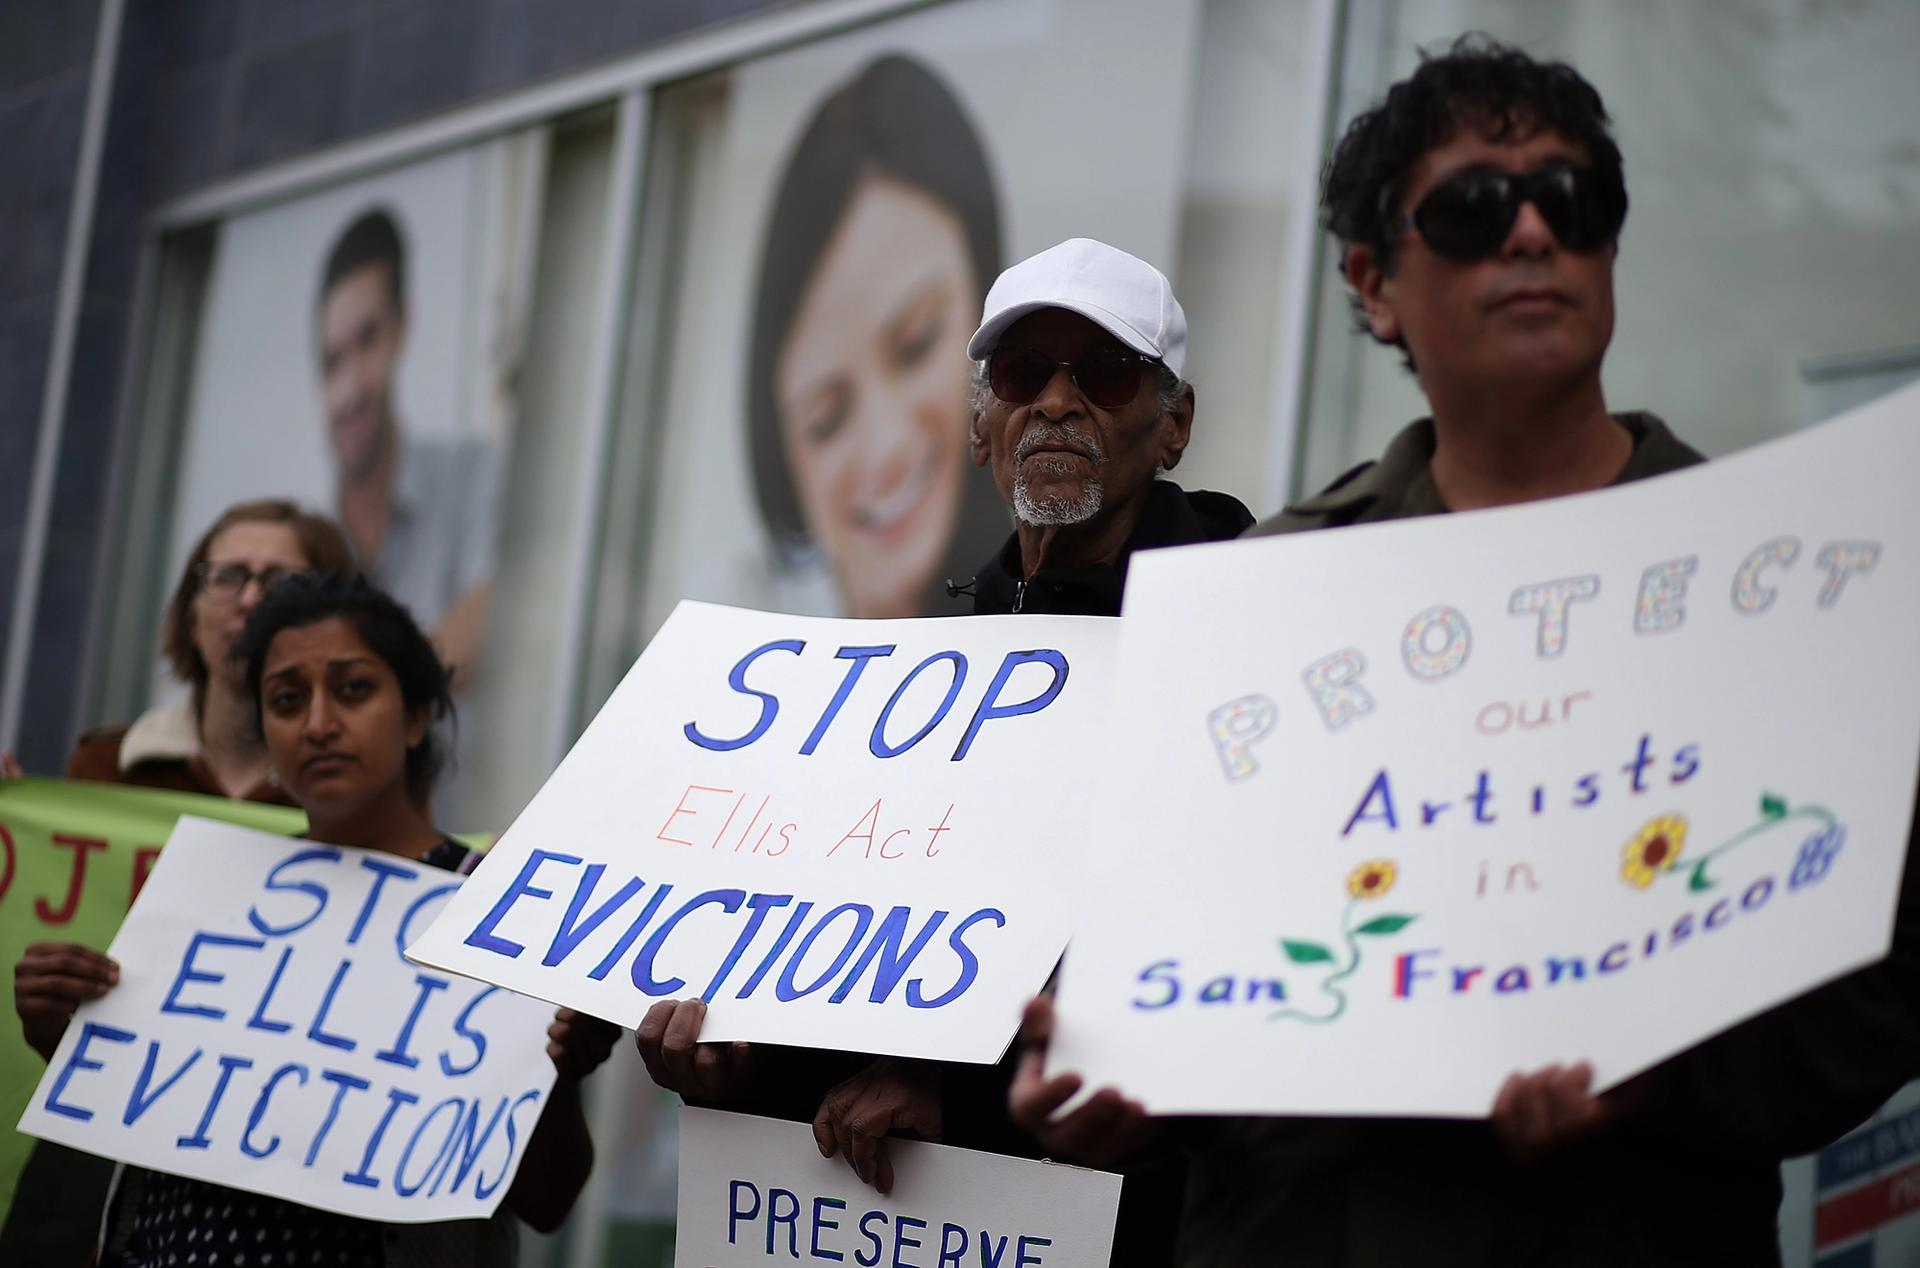 Tenants of 1049 Market Street in San Francisco, including artists, protest against the landlord's attempts to evict them from the rent-controlled building in 2016 Photo by Justin Sullivan/Getty Images